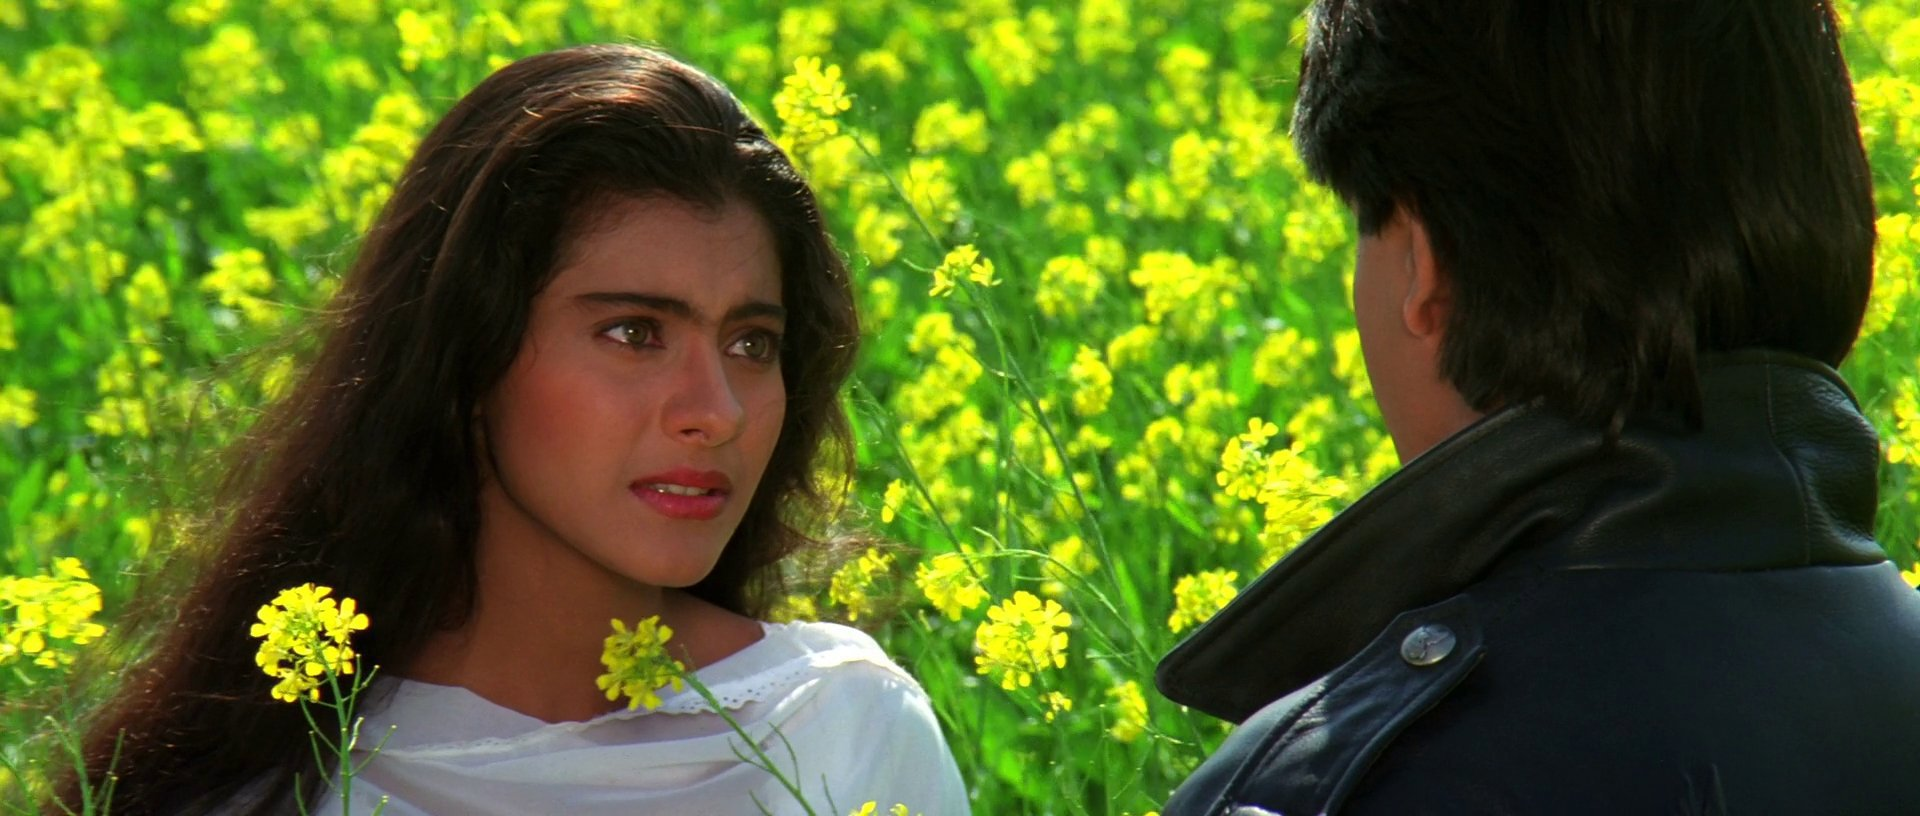 Download Dilwale Dulhania Le Jayenge movie for iPod/iPhone ...